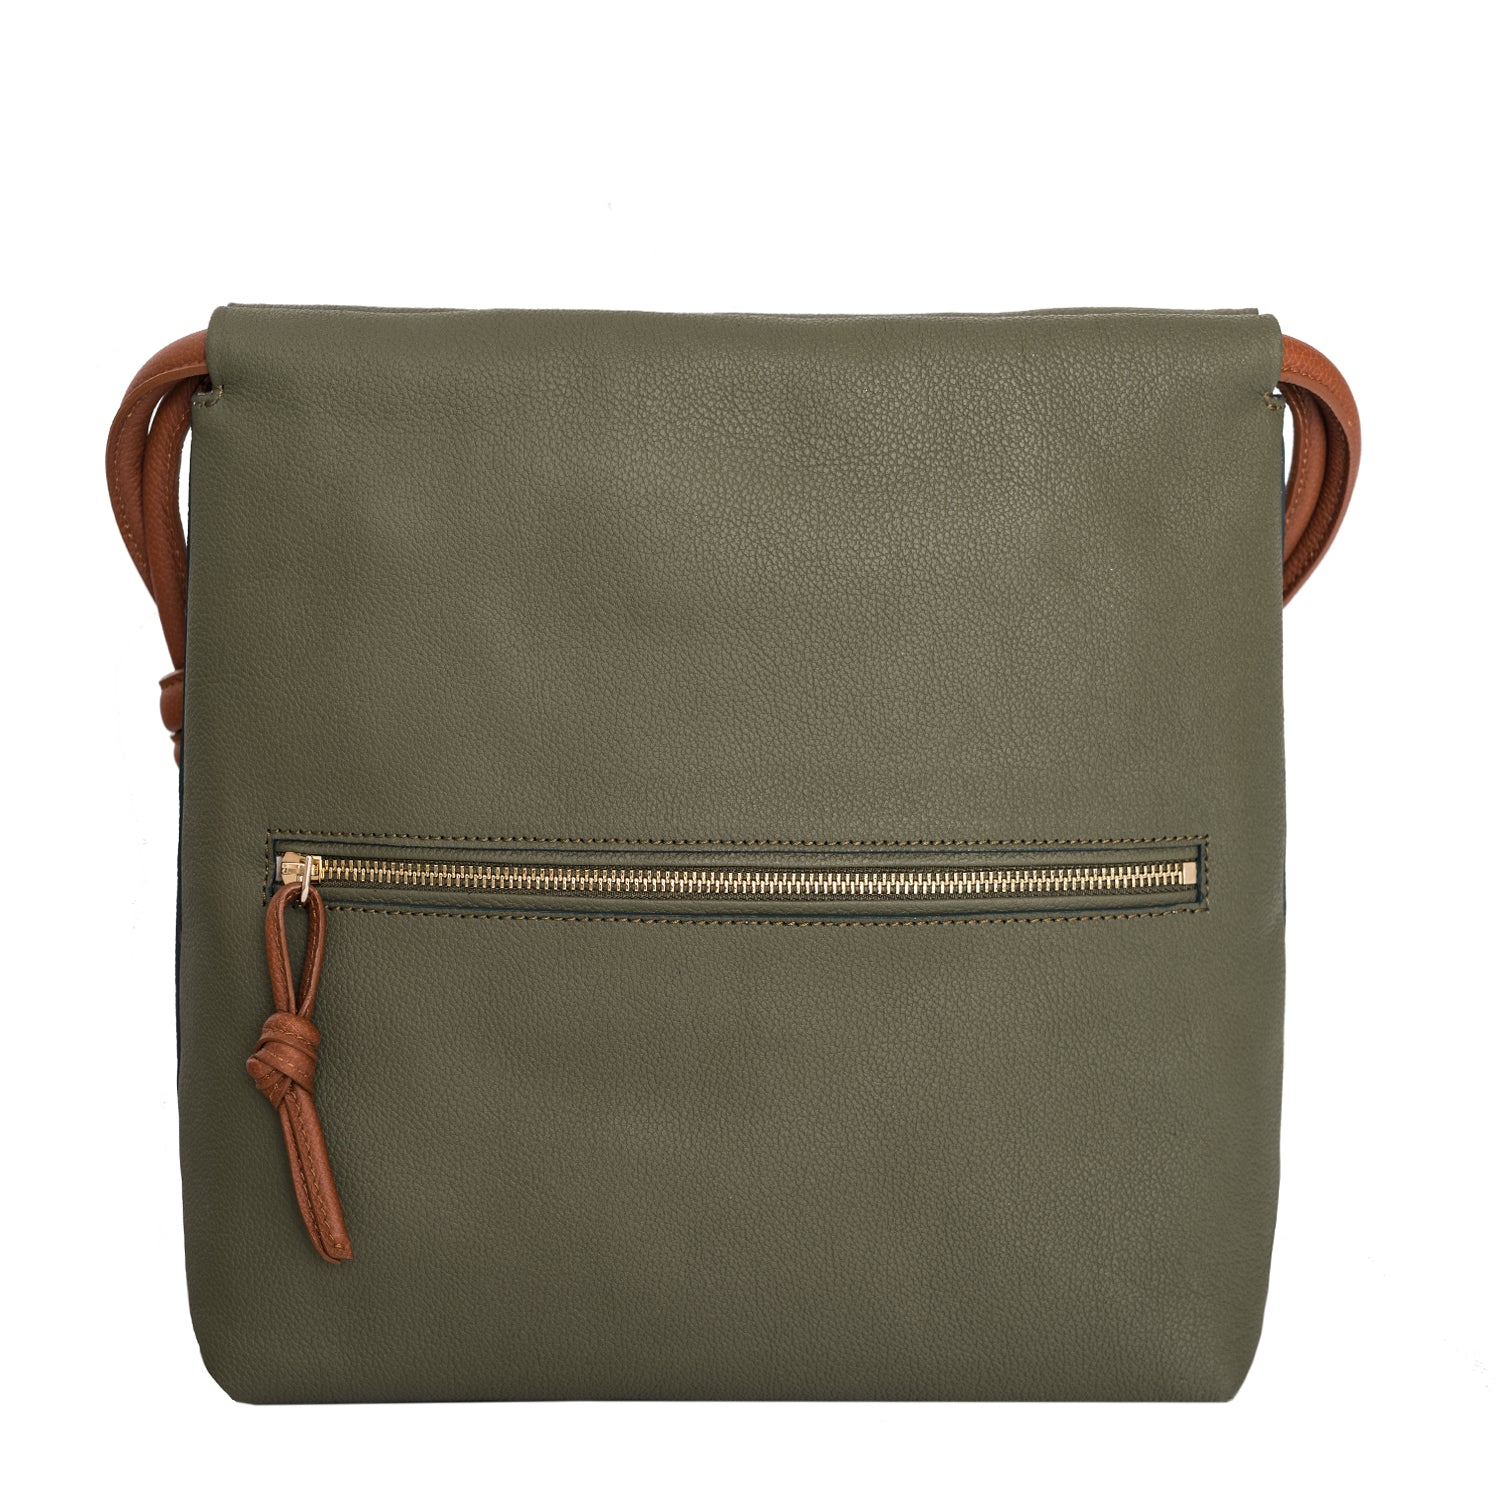 A convertible leather green shoulder bag for women with a knot detail on the strap that could be used as a clutch bag with its roll down feature, back image.